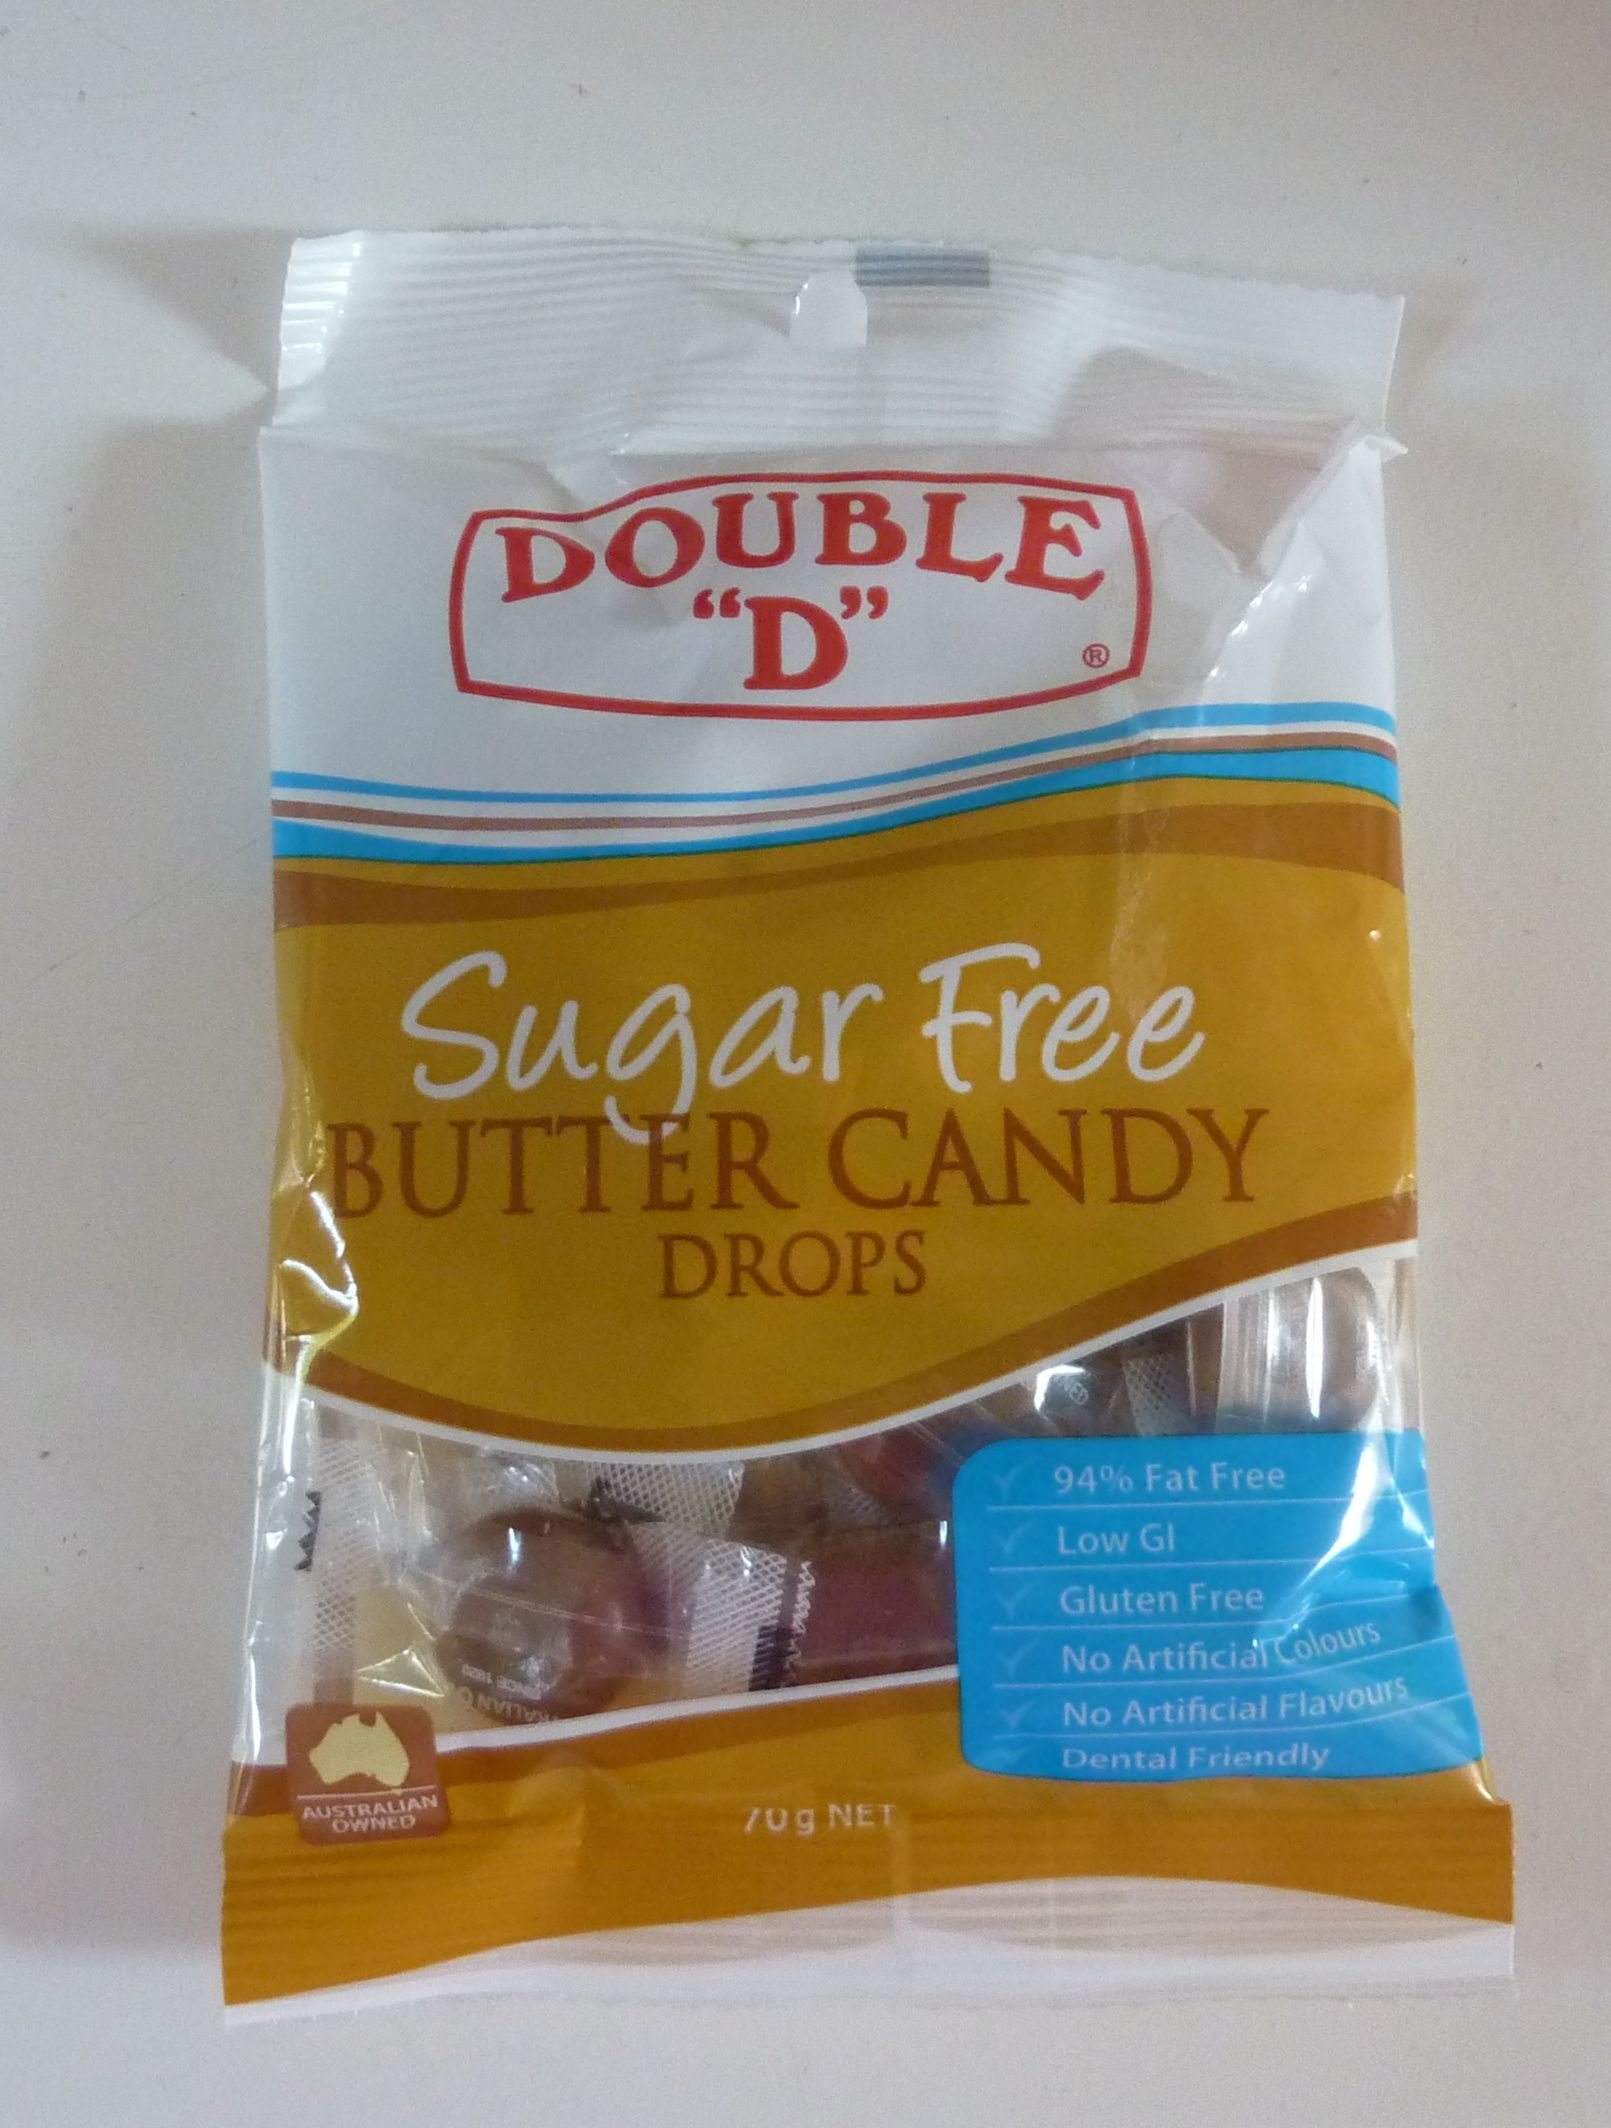 Sugar free butter candy drops